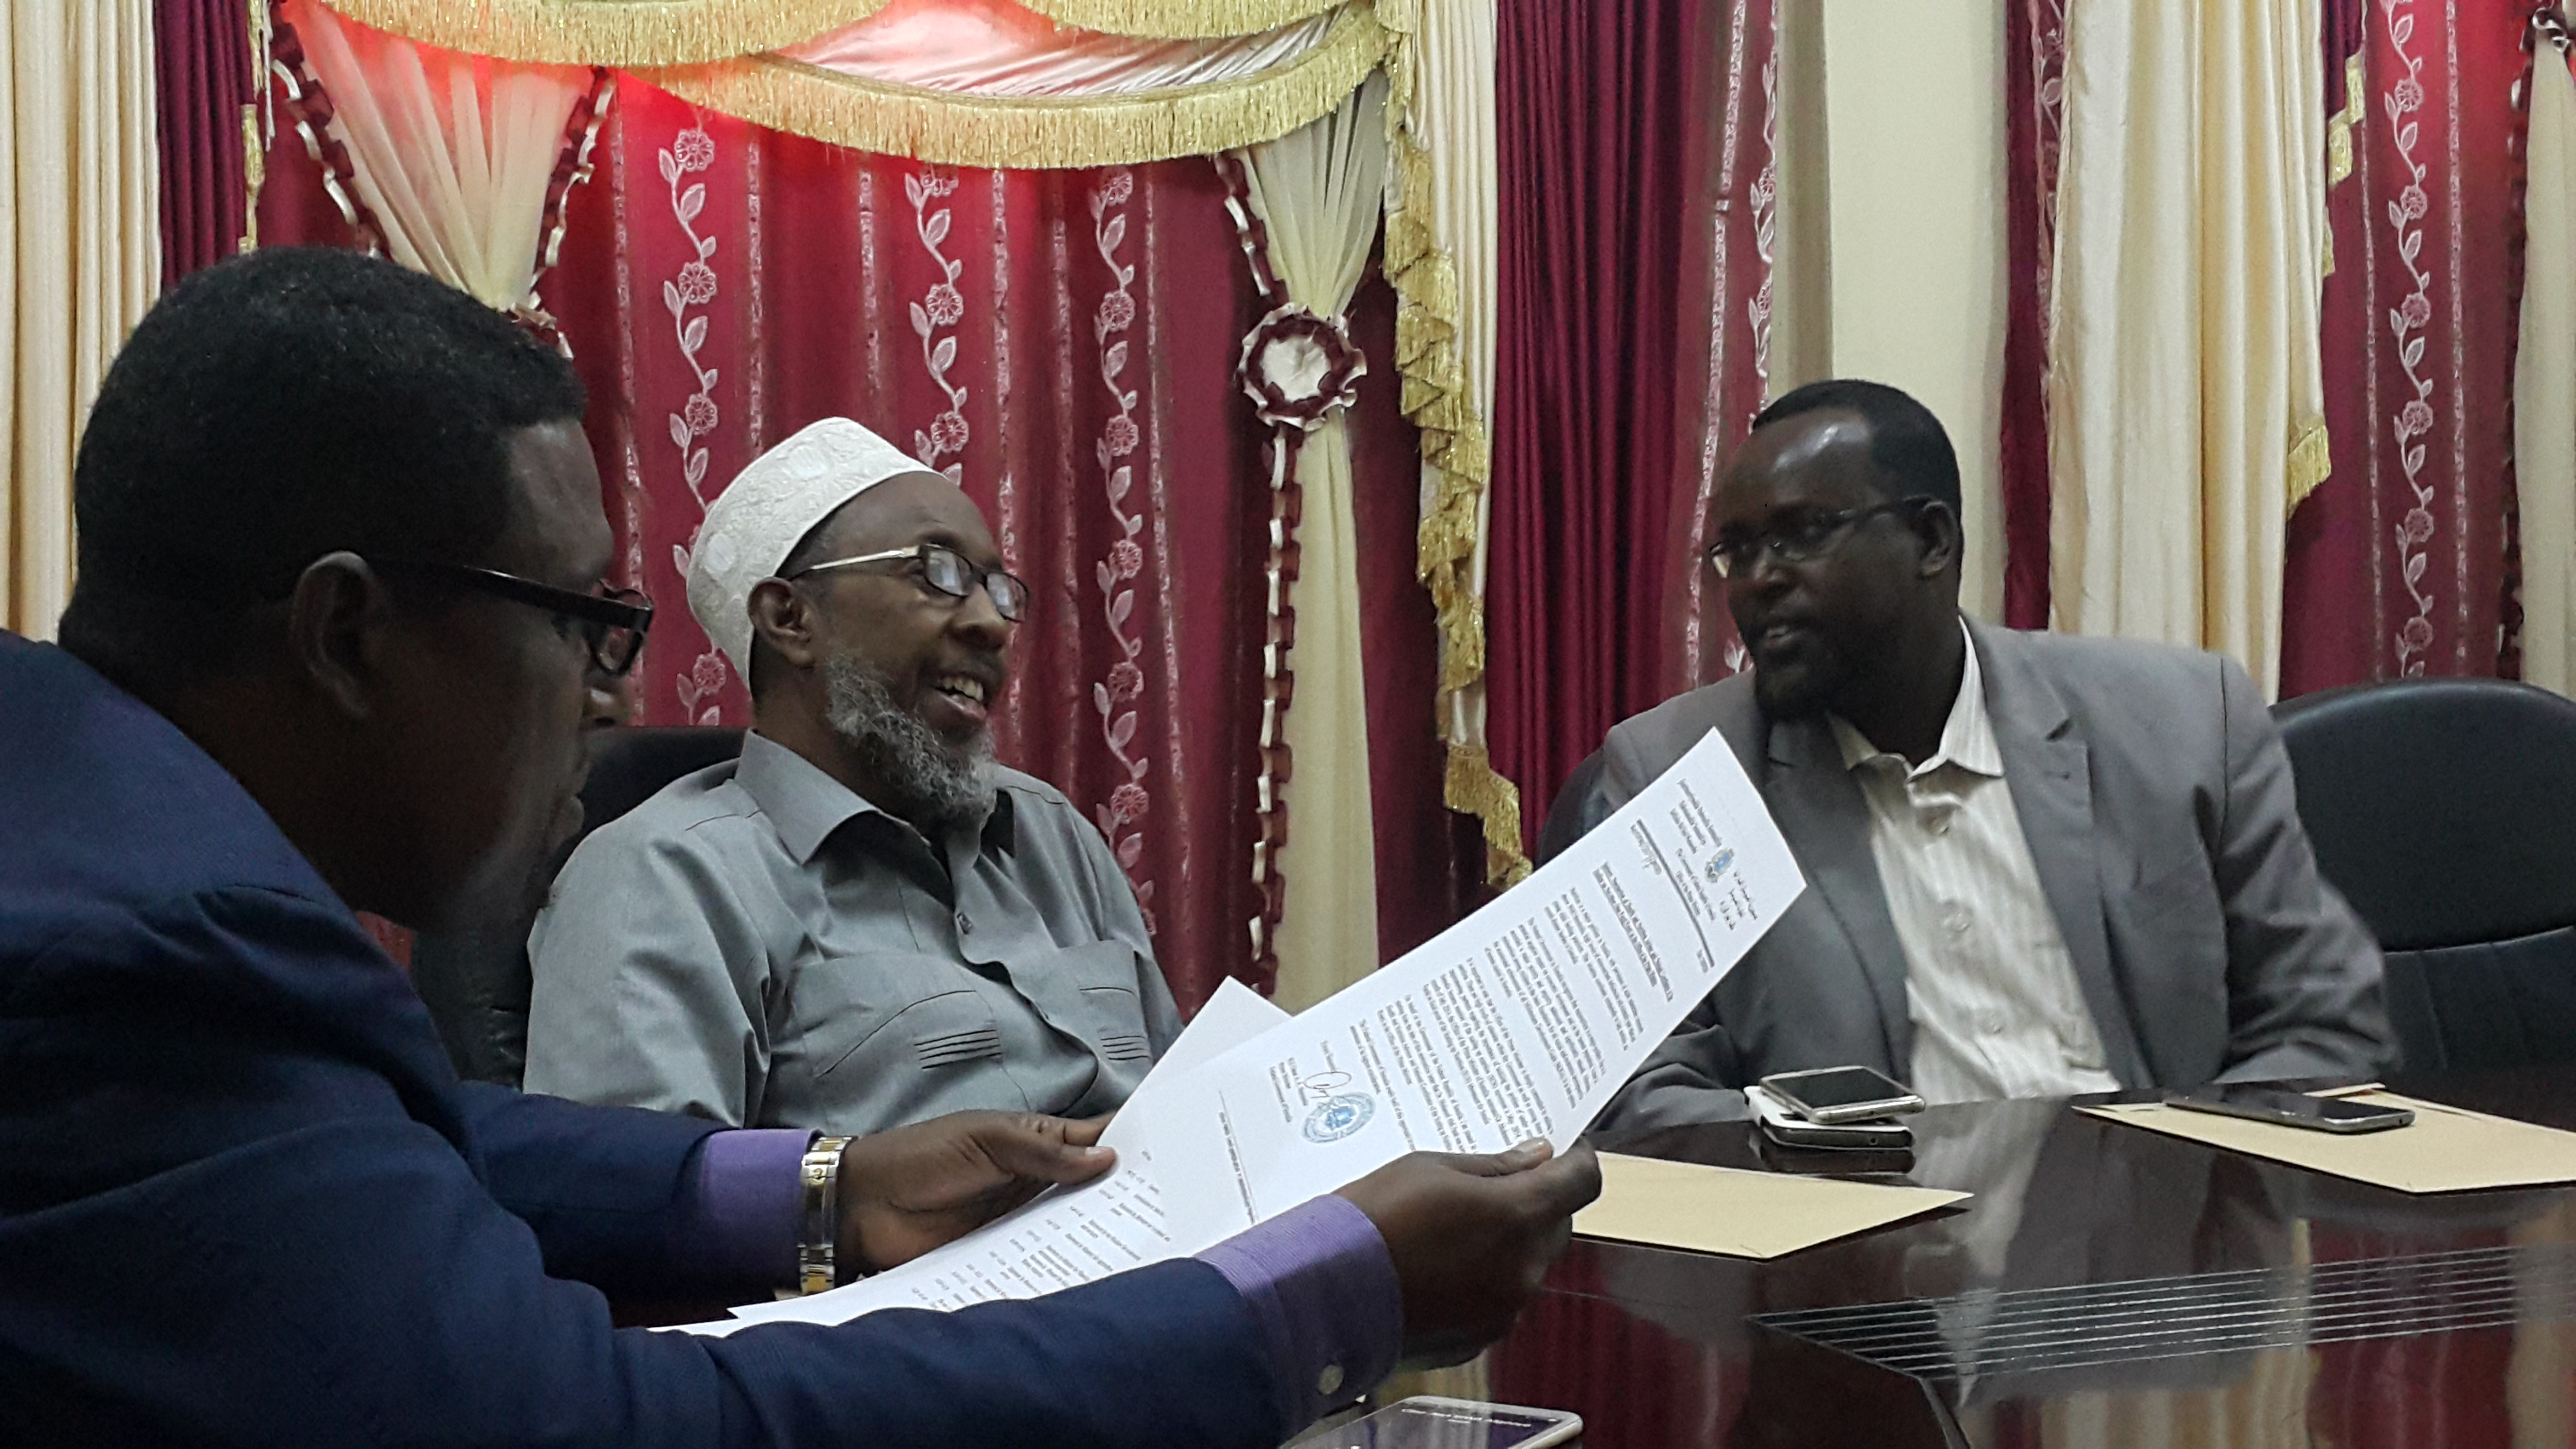 (Right) Dr. Mohamed Abdi Farah, Health and Nutrition Adviser and SUN Government Focal Point, Somalia at the meeting.